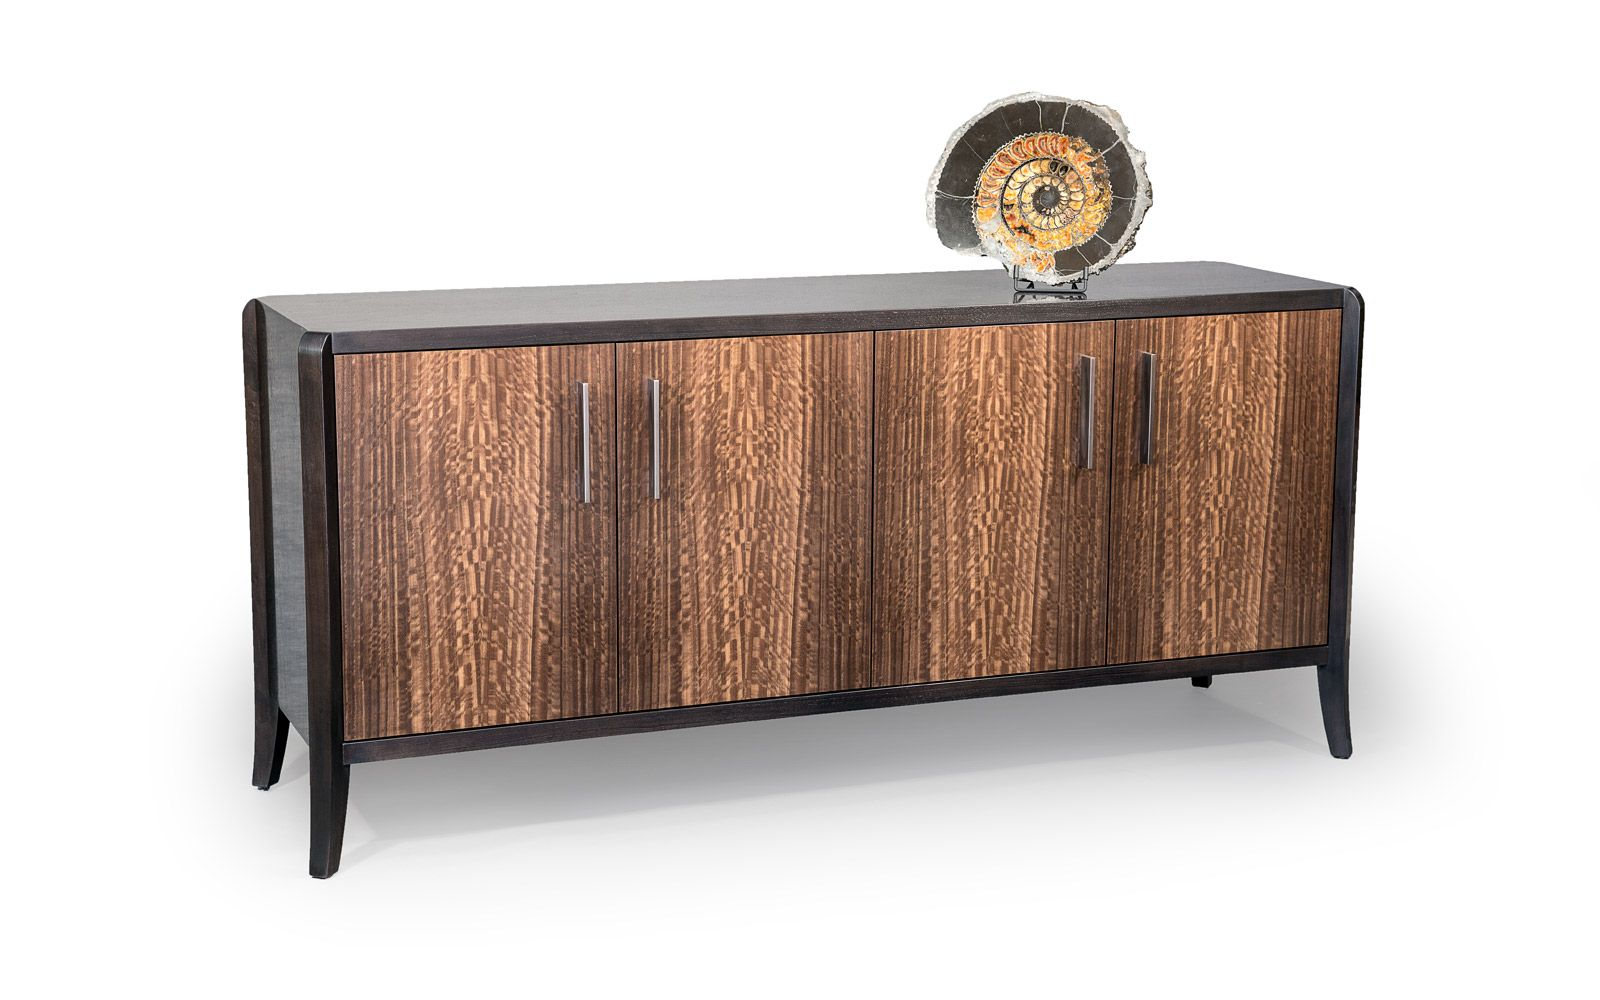 Releve Credenza Knowlton Brothers Contemporary Sideboard Furniture Credenza